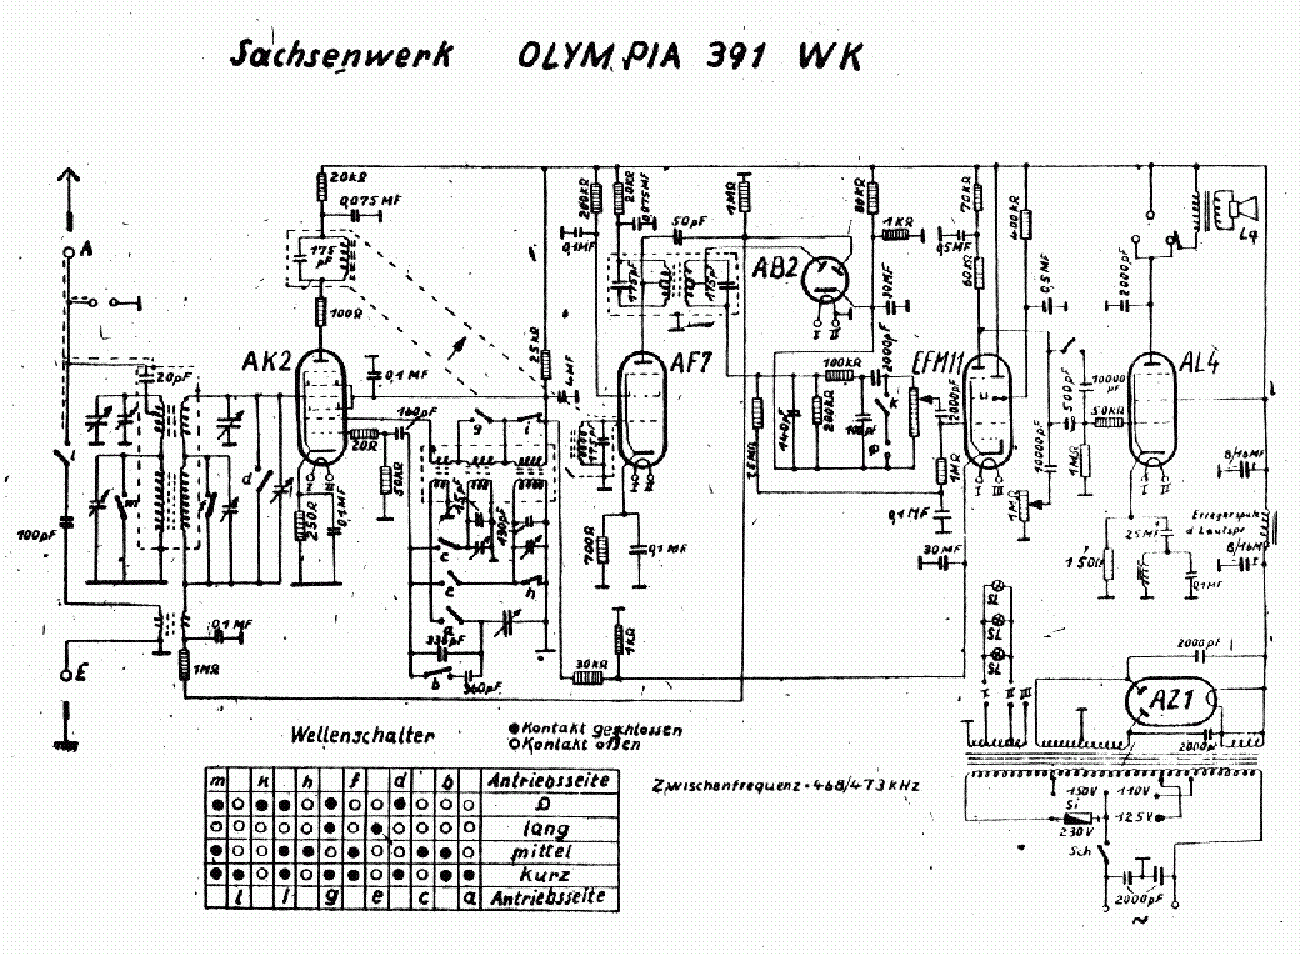 SACHSENWERK OLYMPIA-391WK Service Manual download